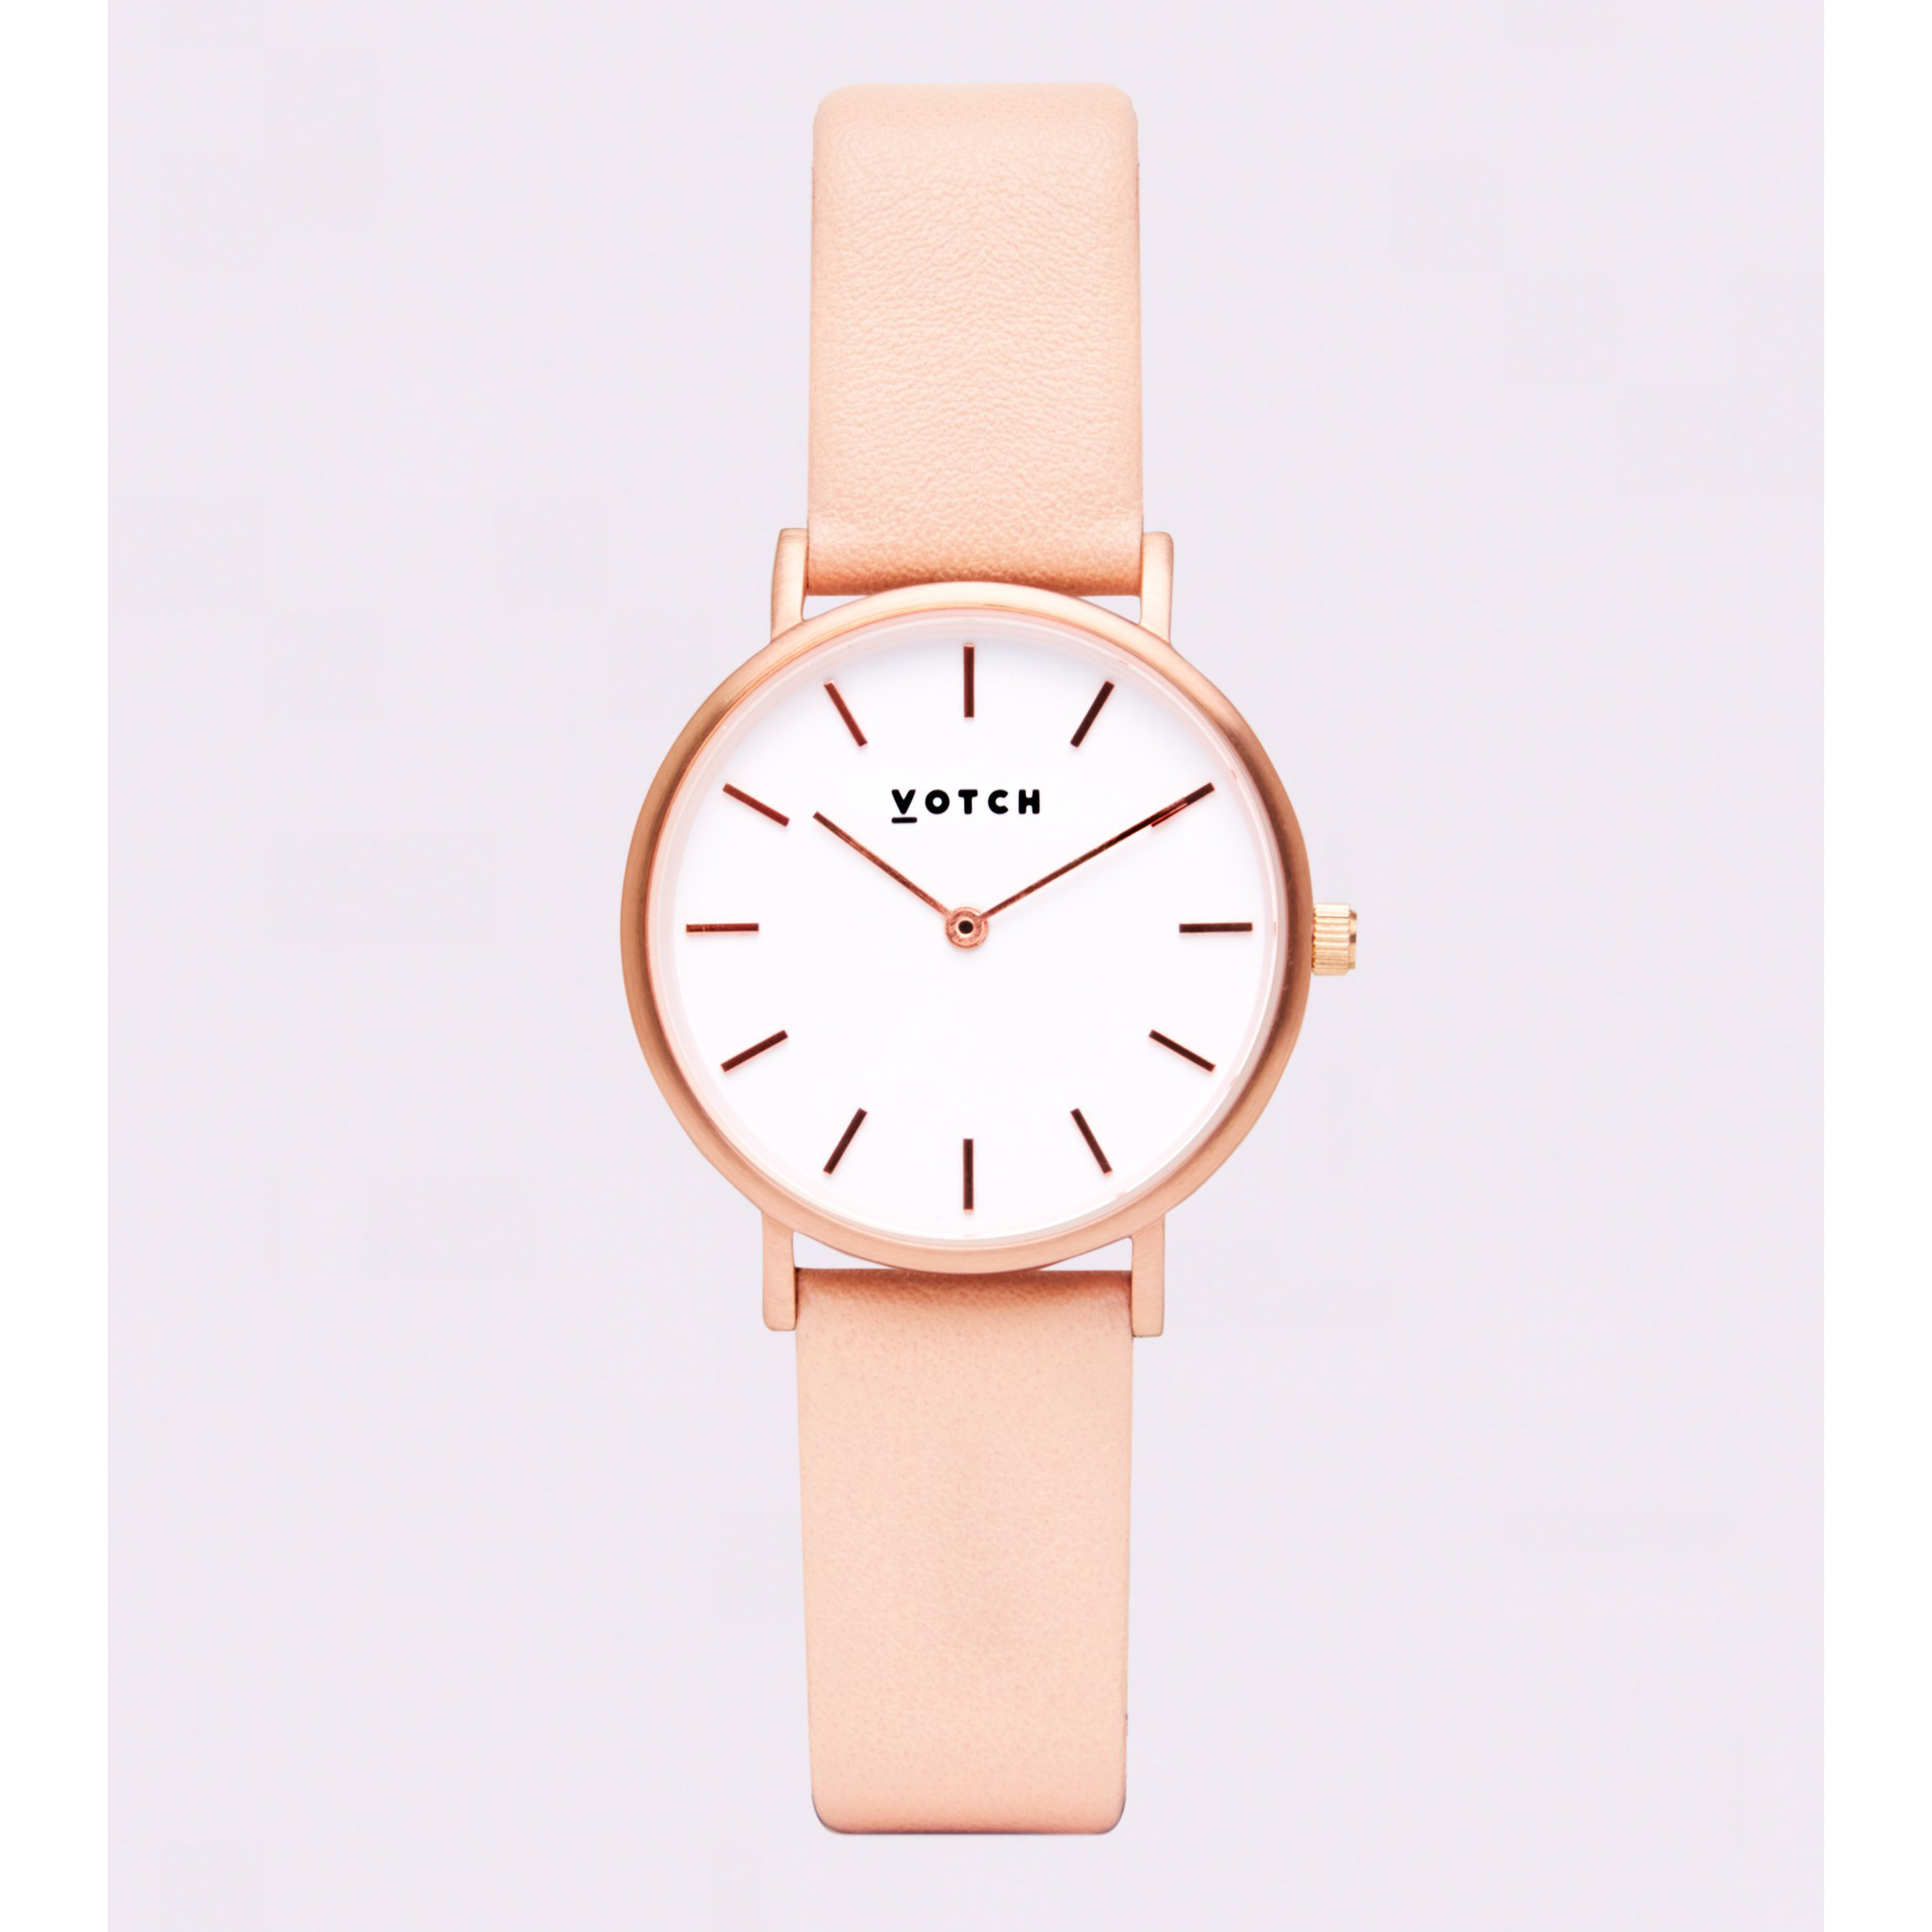 The Petite Pink & Rose Gold